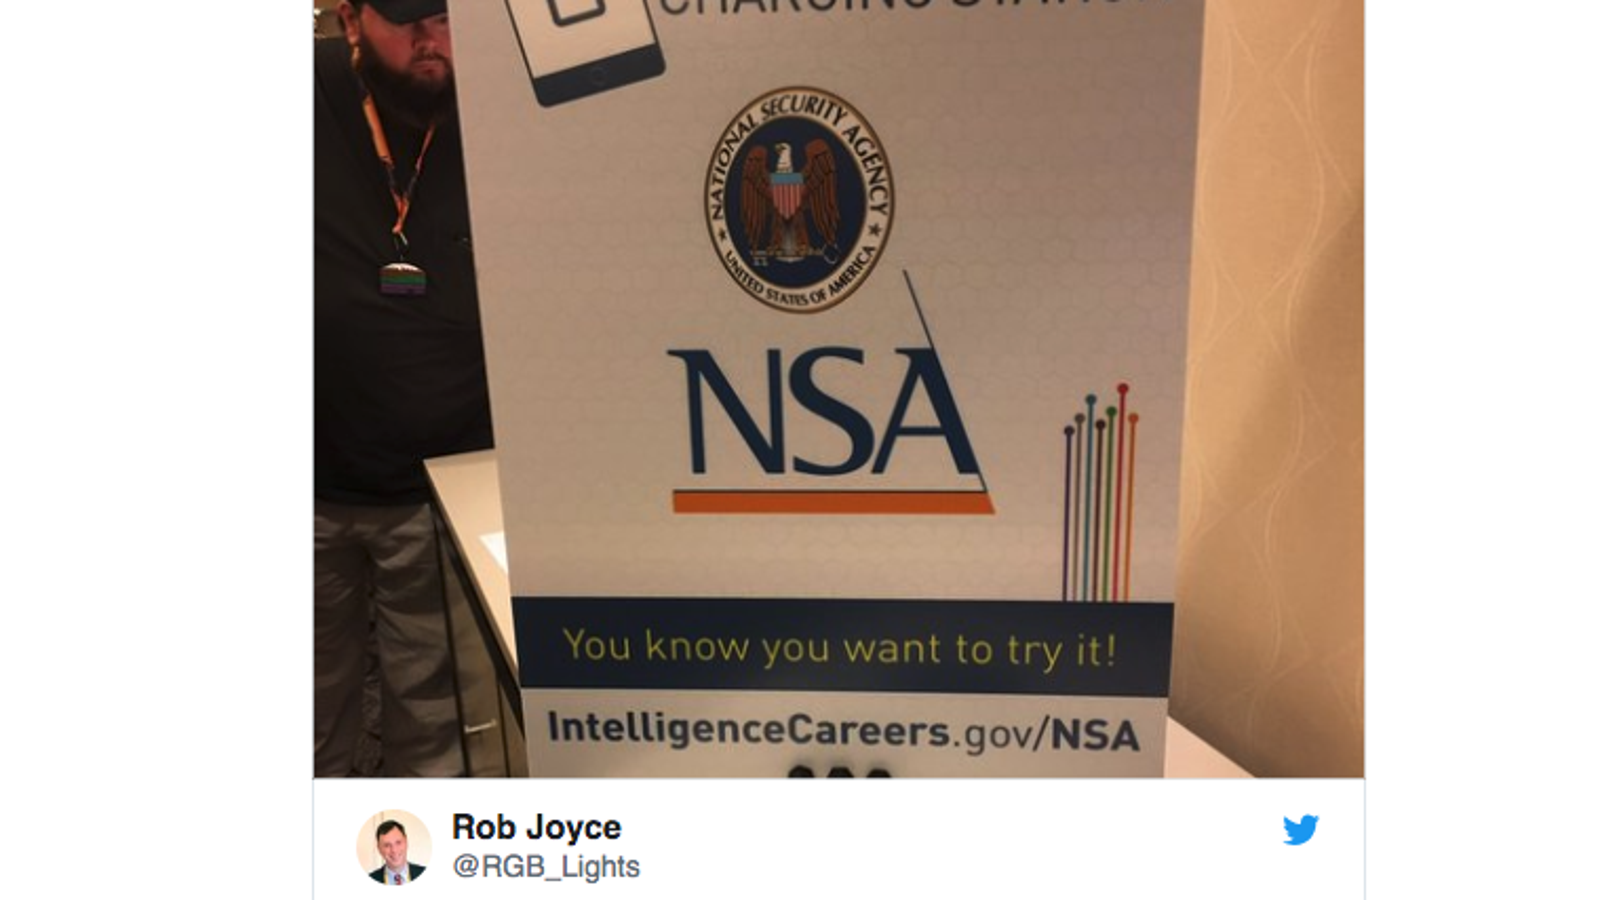 NSA Puts Phone Chargers at Hacker Conference in Plot to Go Viral